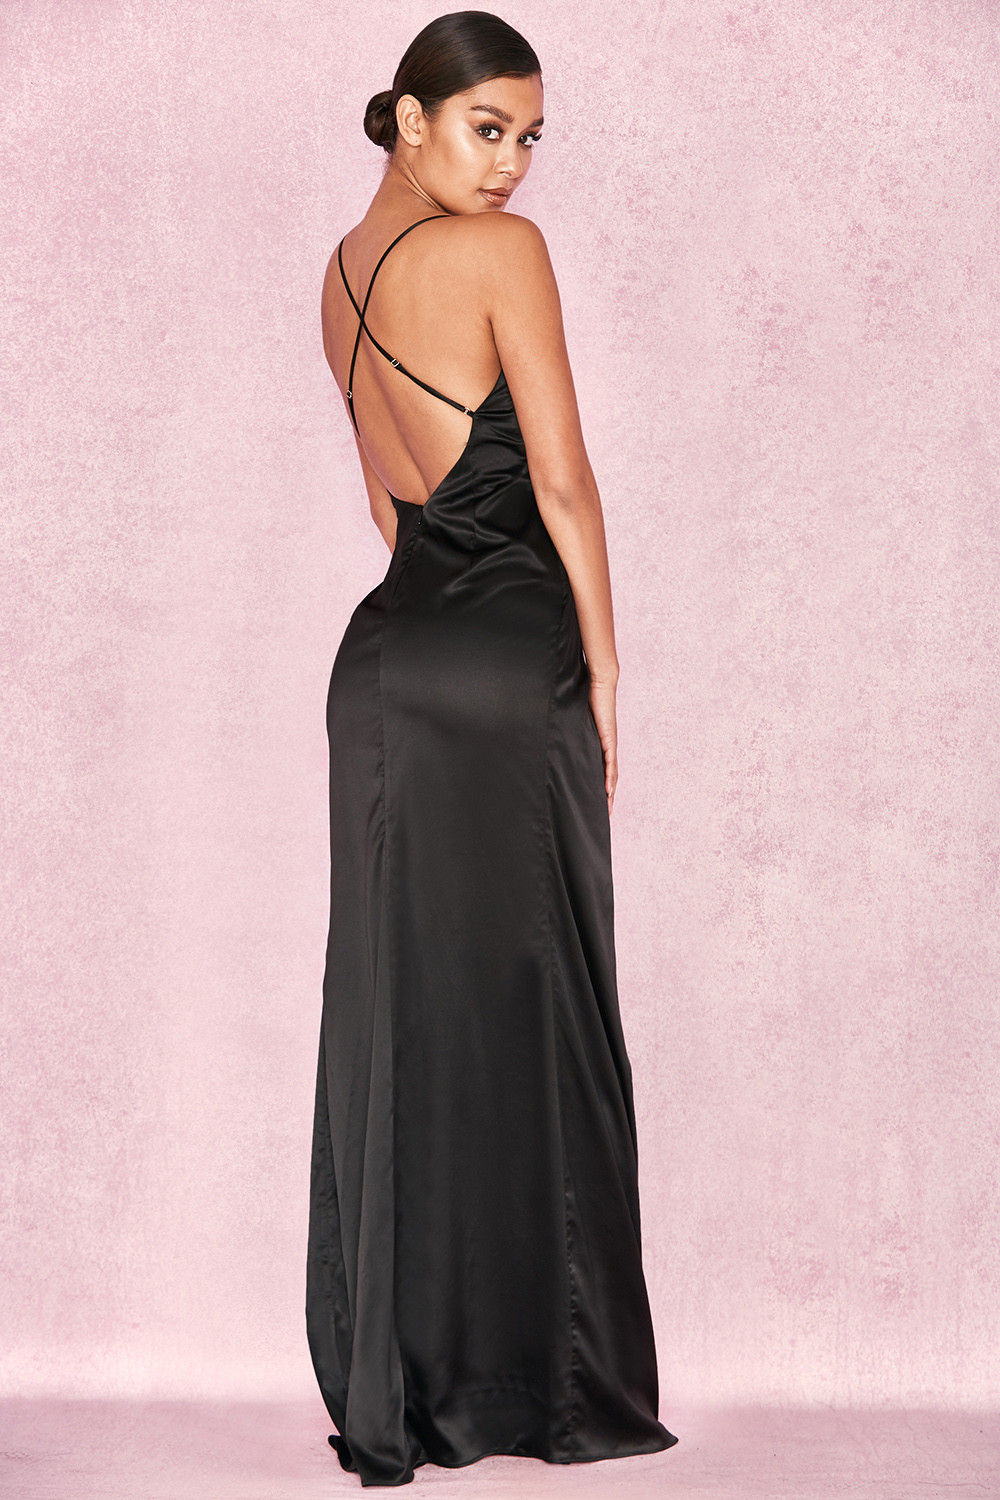 Clothing Max Dresses Fairuz Black Draped Satin Maxi Gown